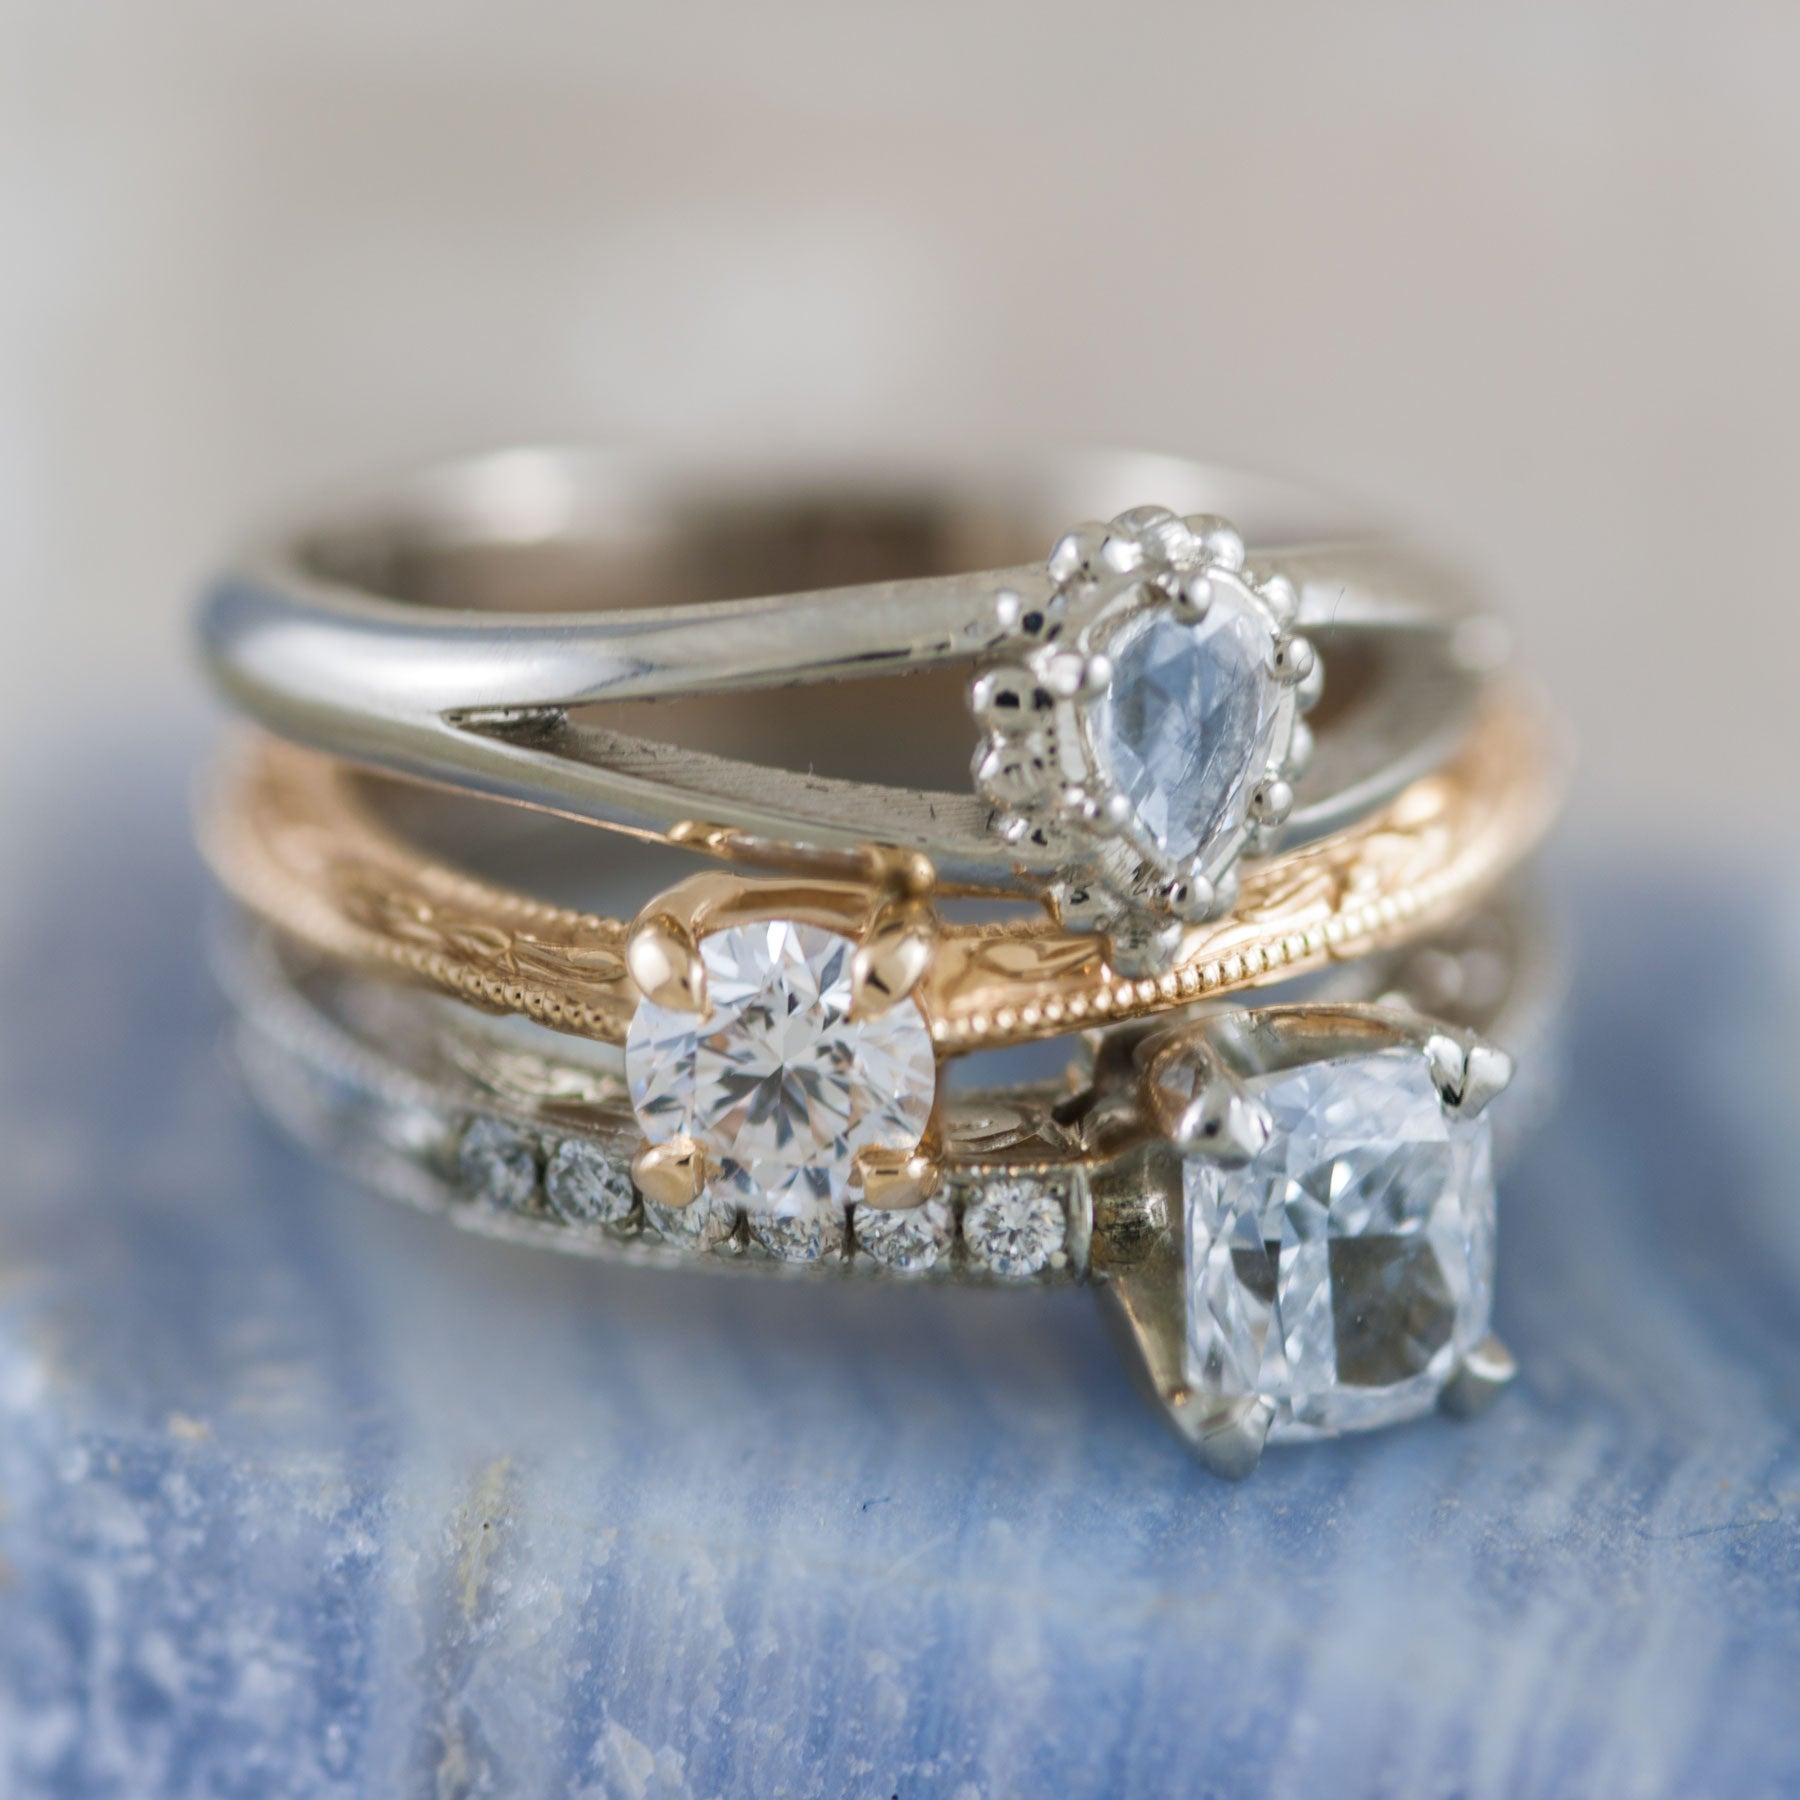 Unique handcrafted engagement ring stack